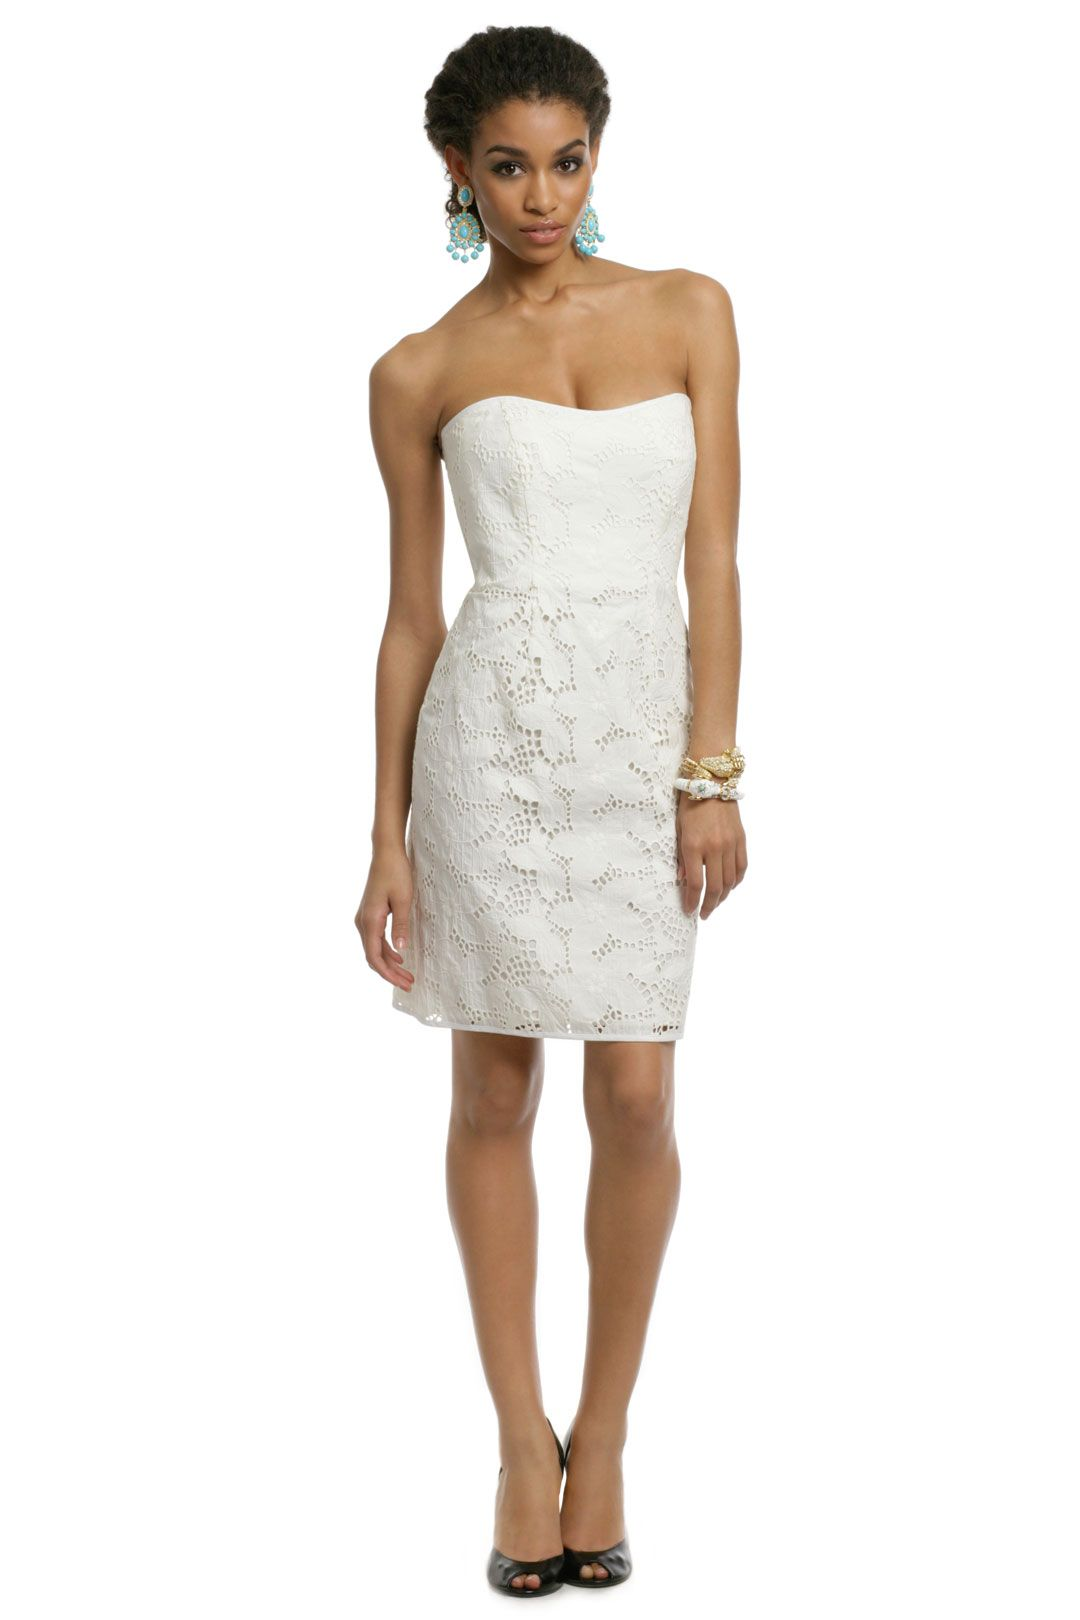 Courthouse wedding dresses under $100  Sweet Morgan Floral Dress  Alberta ferretti Floral and Rehearsal